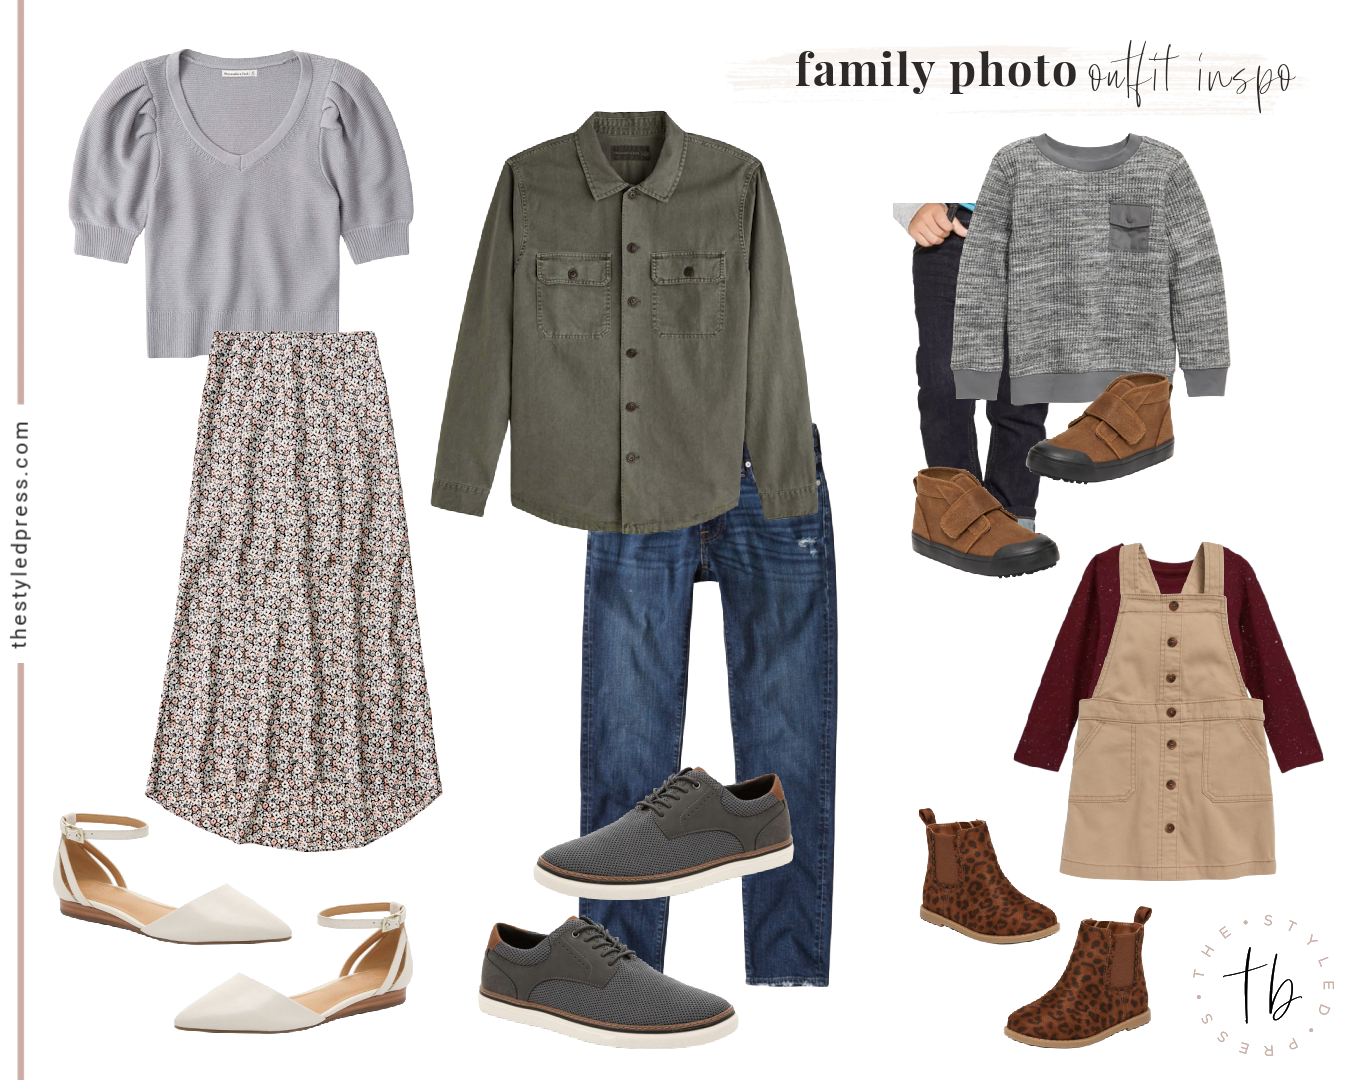 fall family photo outfit inspo, family photo outfit ideas, family photos outfits